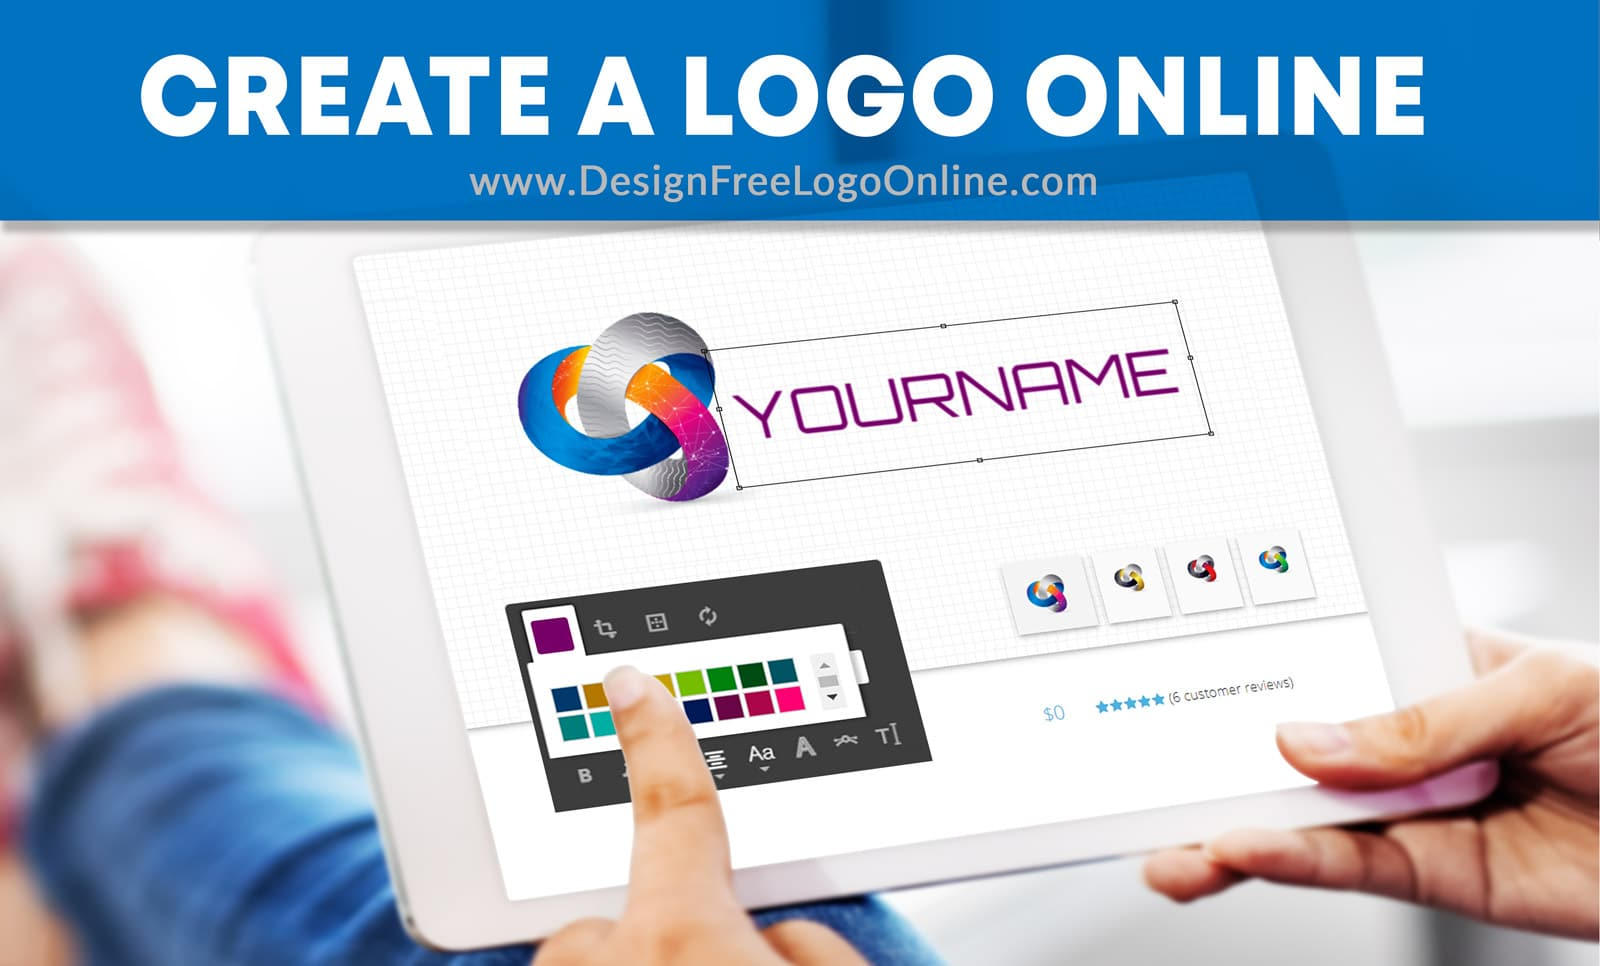 Online Logo Making Made Simple With Free Logo Maker